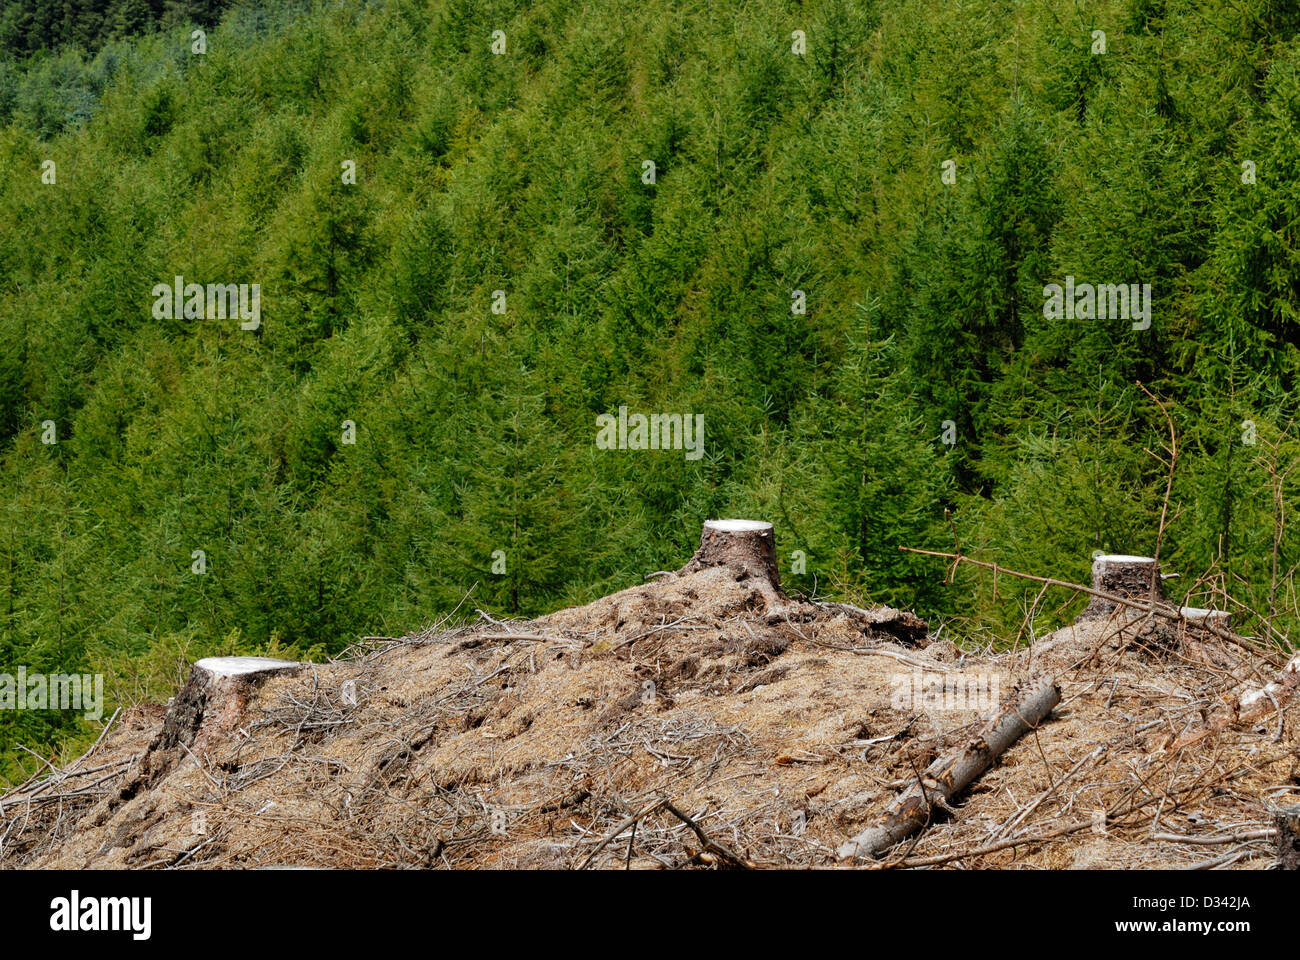 Tree stumps from recently felled pine trees juxtaposed against foliage from pine forest. - Stock Image